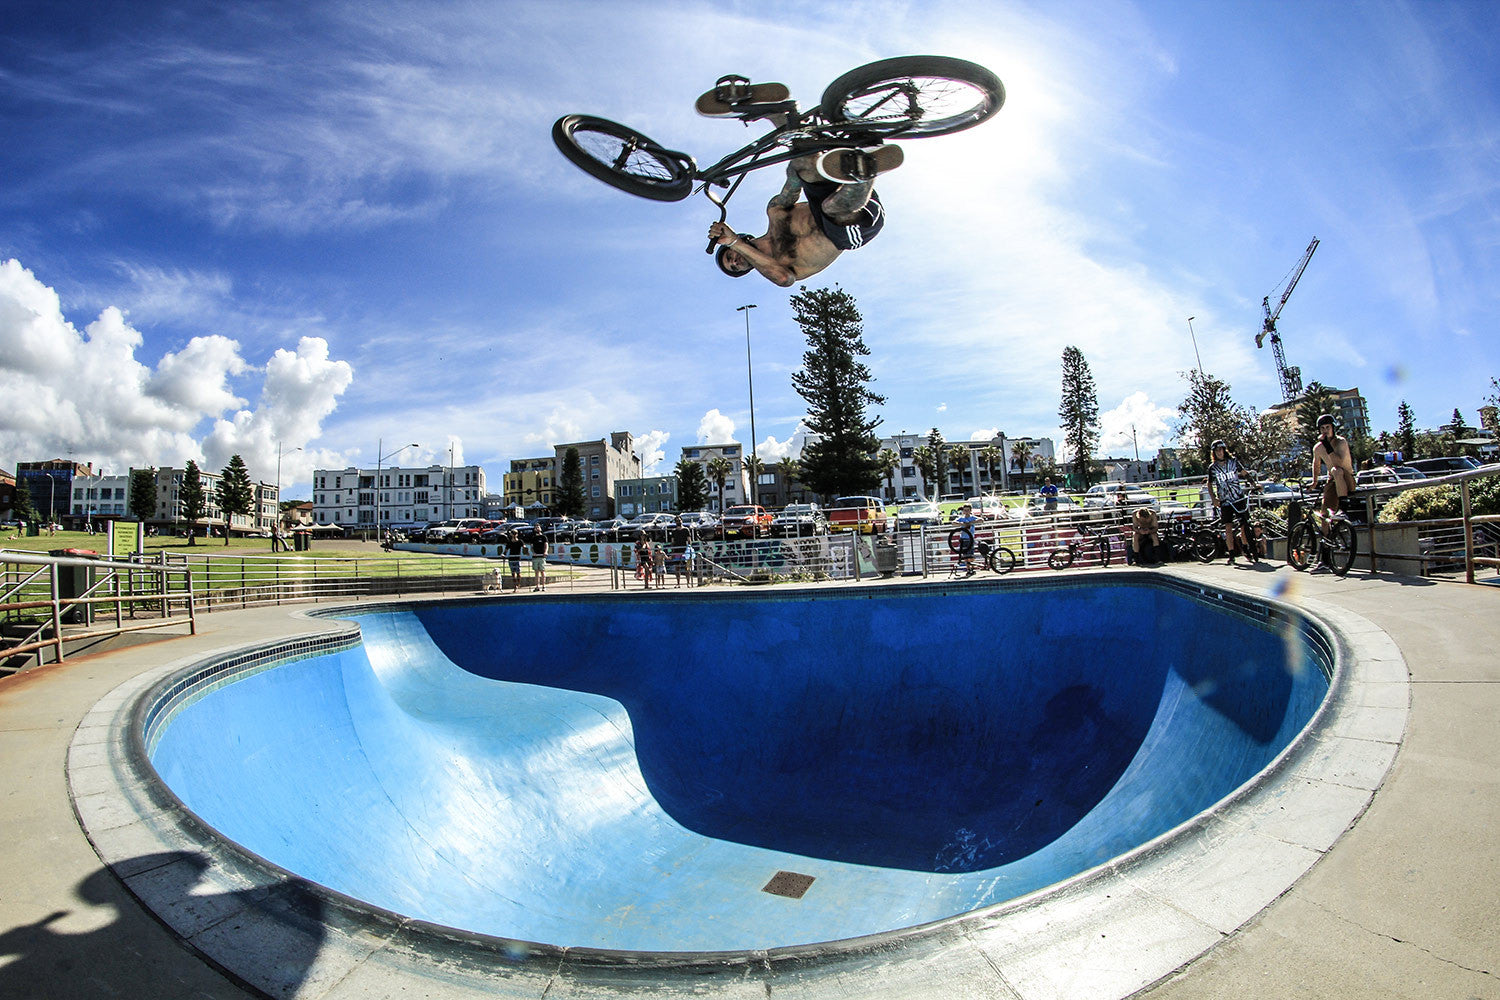 Benn Pigot pocket air Bondi